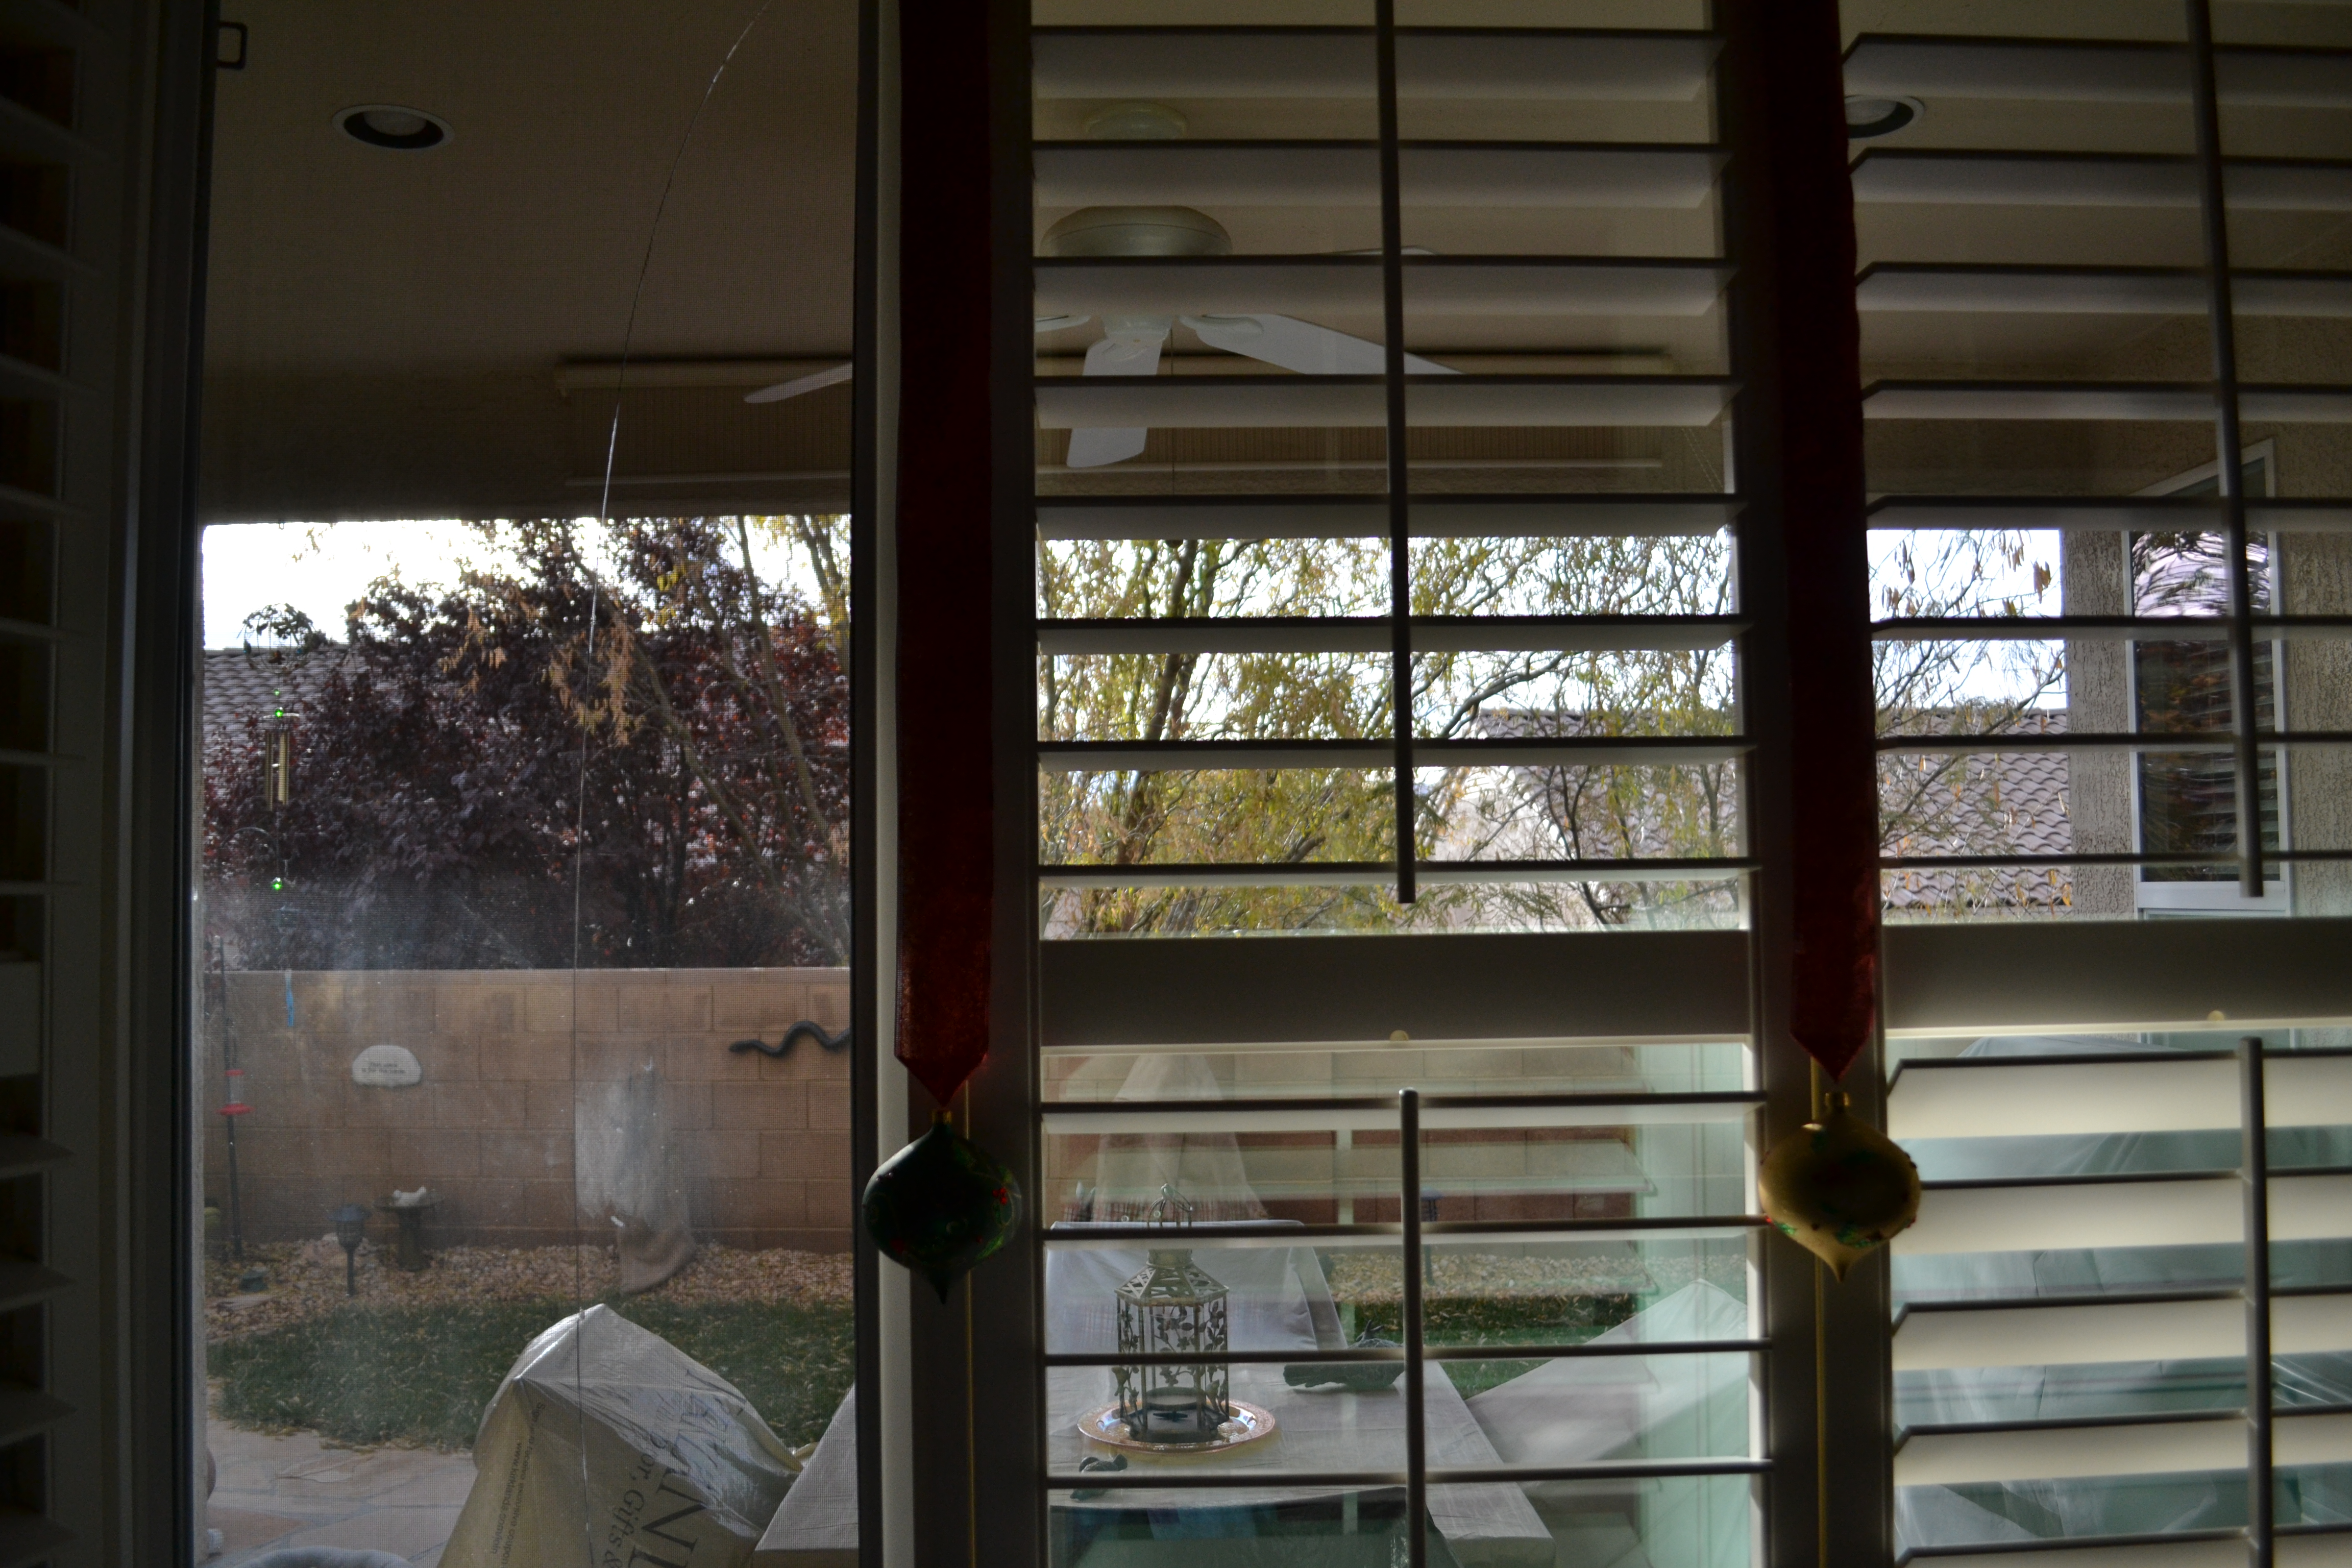 A cracked window in the home of Charles Rose at SunRiver, St. George, Utah, Dec. 5, 2016   Photo by Joseph Witham, St. George News